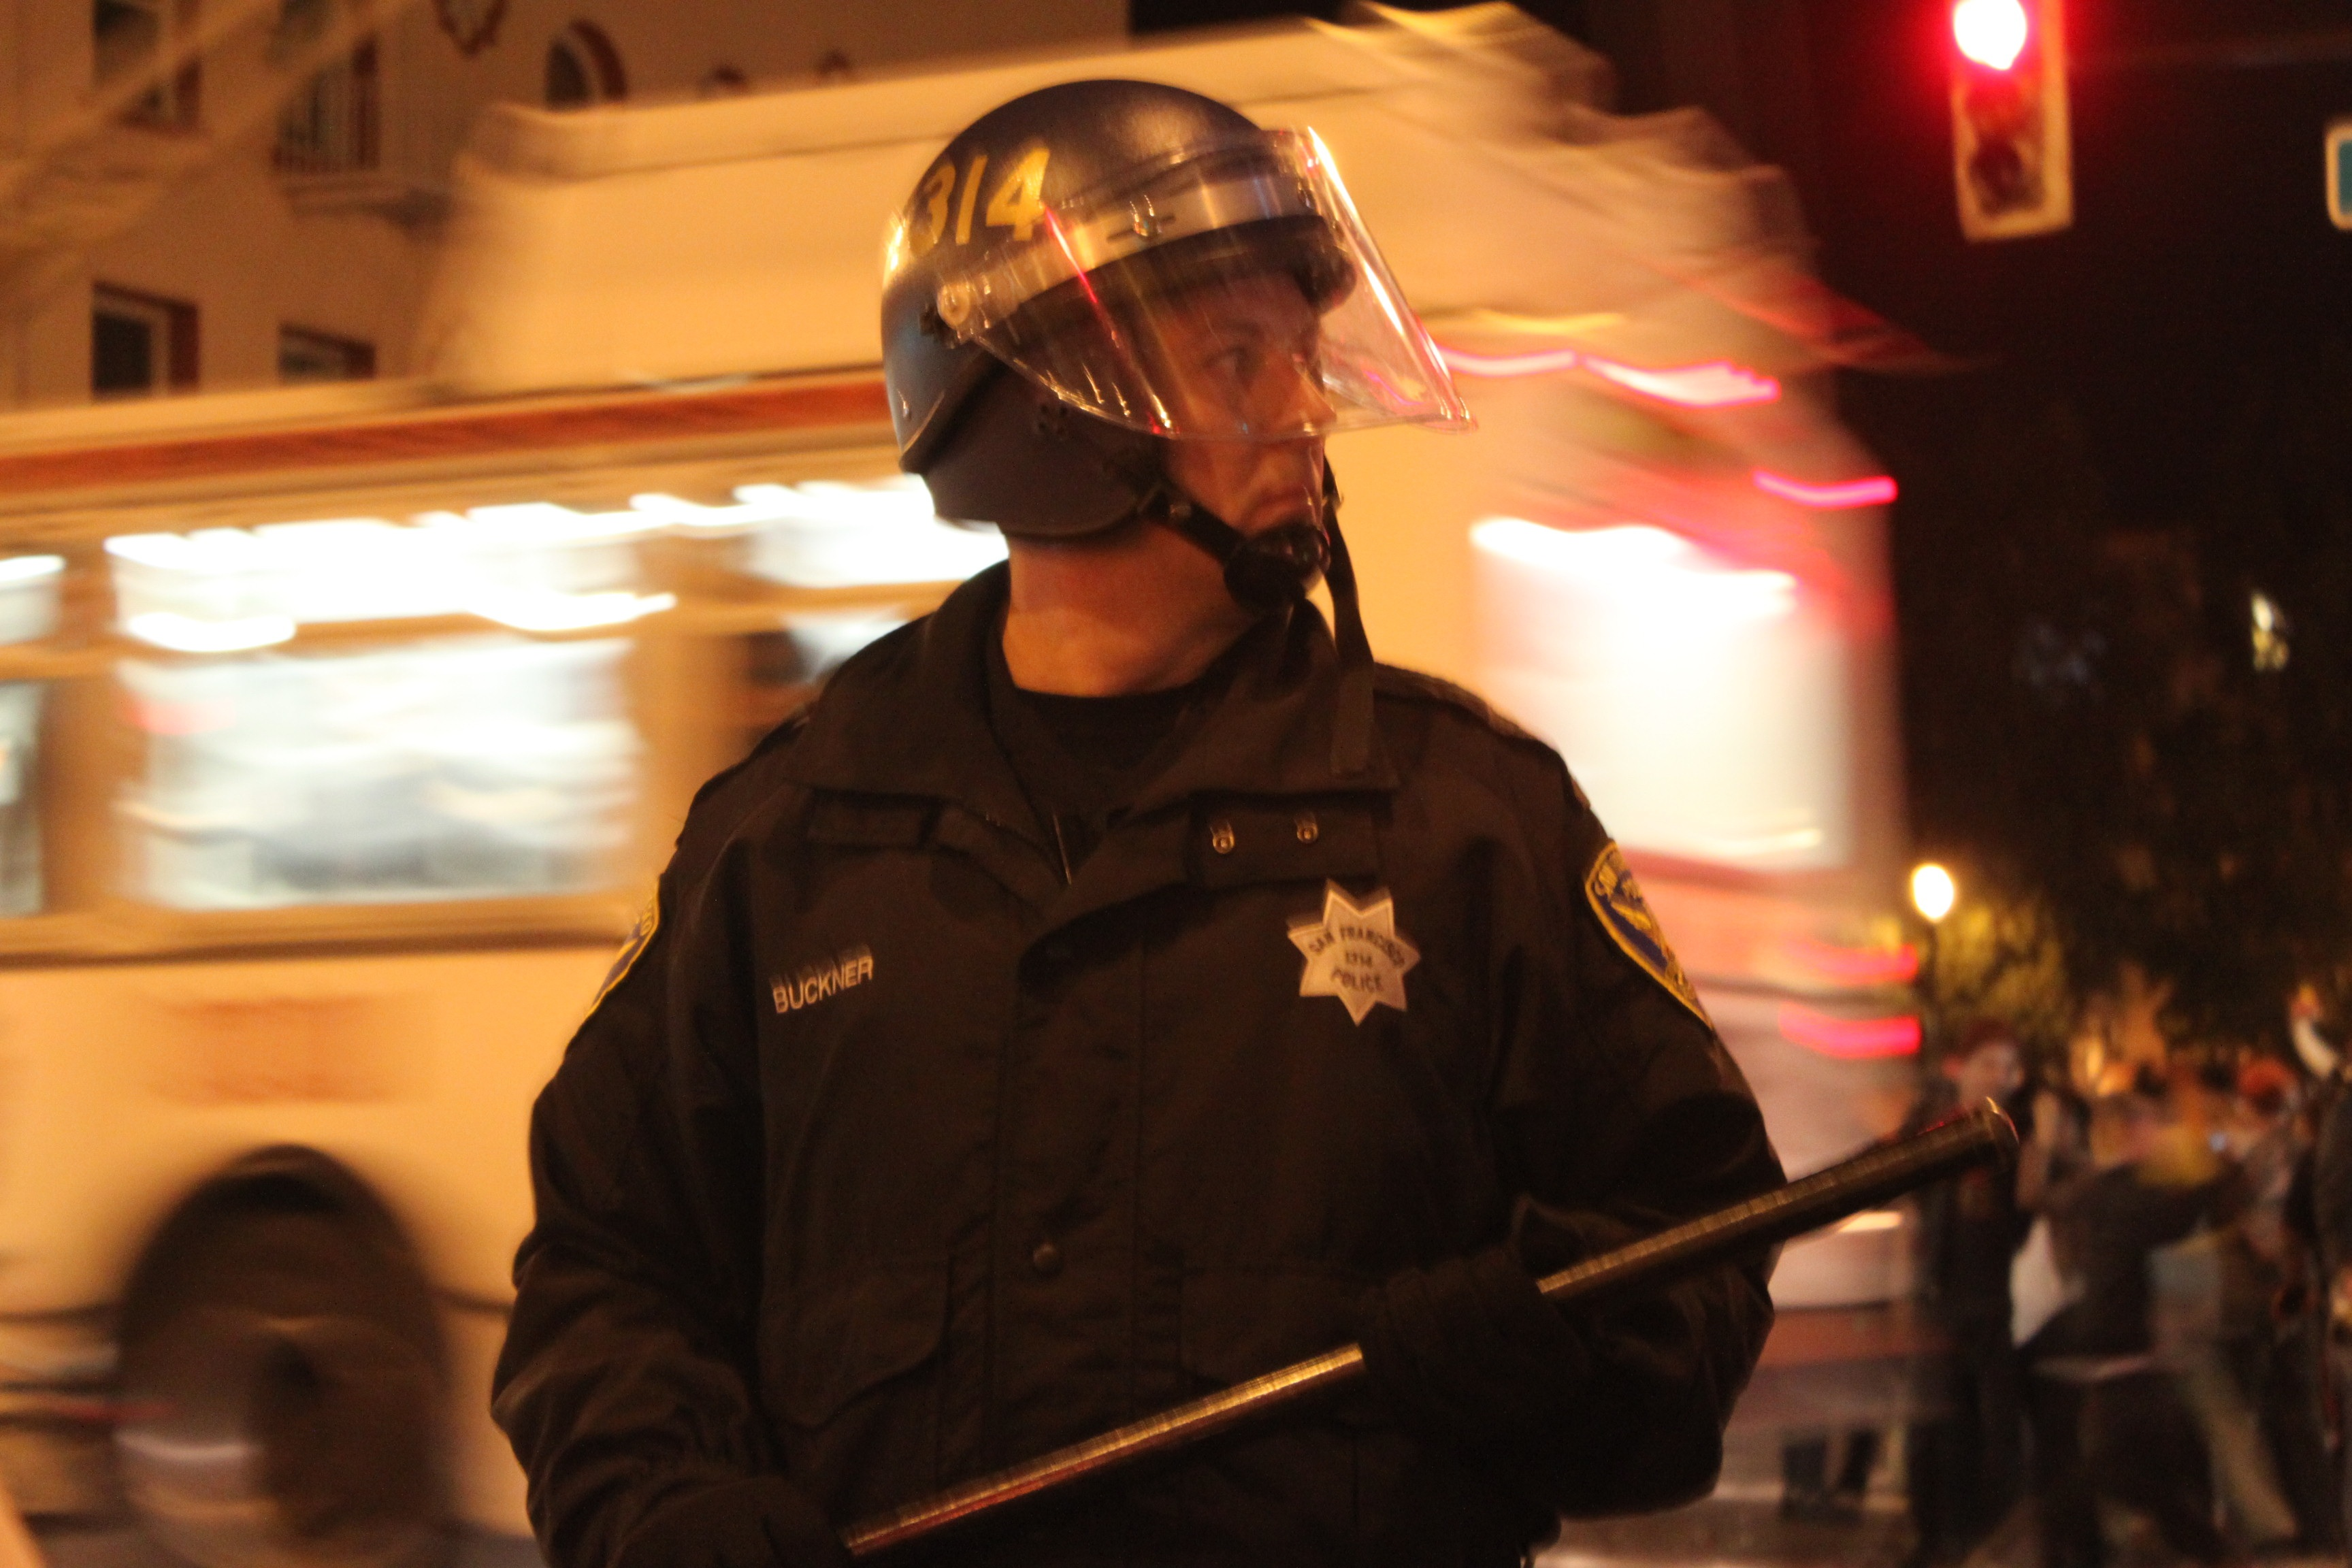 Police with stick